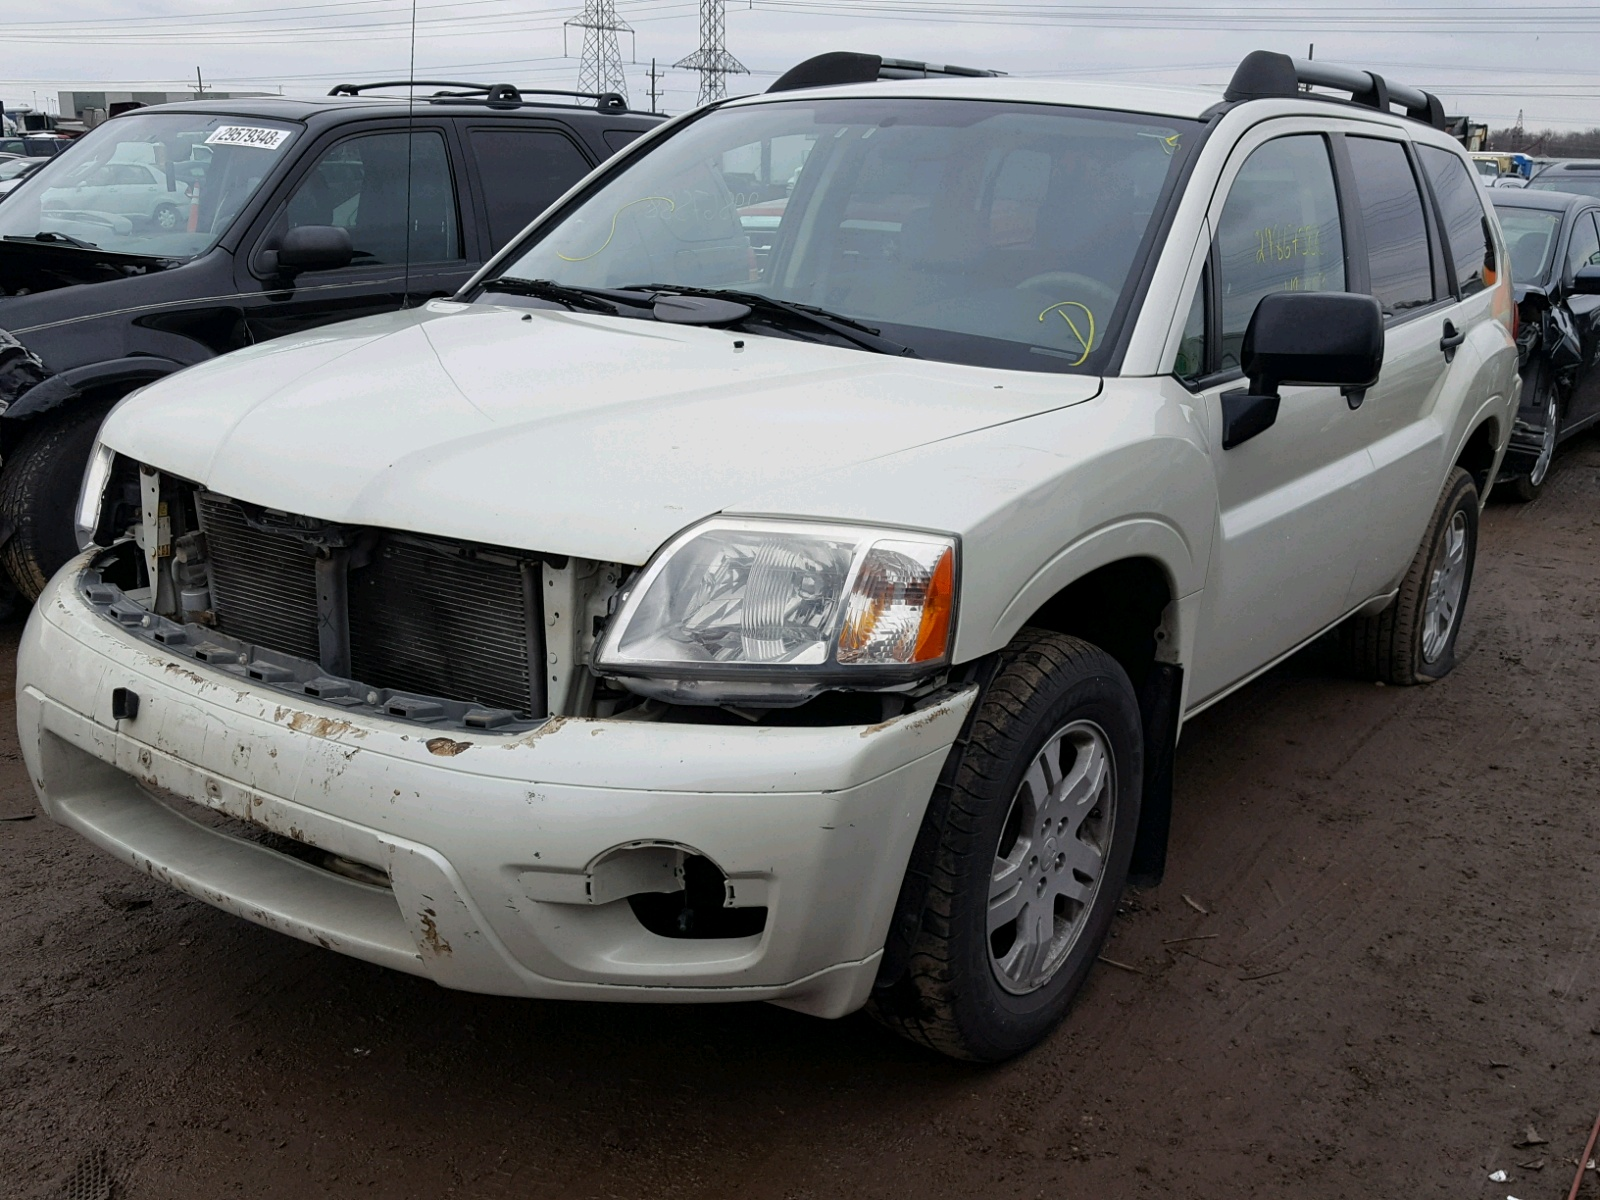 mitsubishi certificate salvage chicago en view white sale in right auto on lot north il l carfinder copart auctions endeavor online